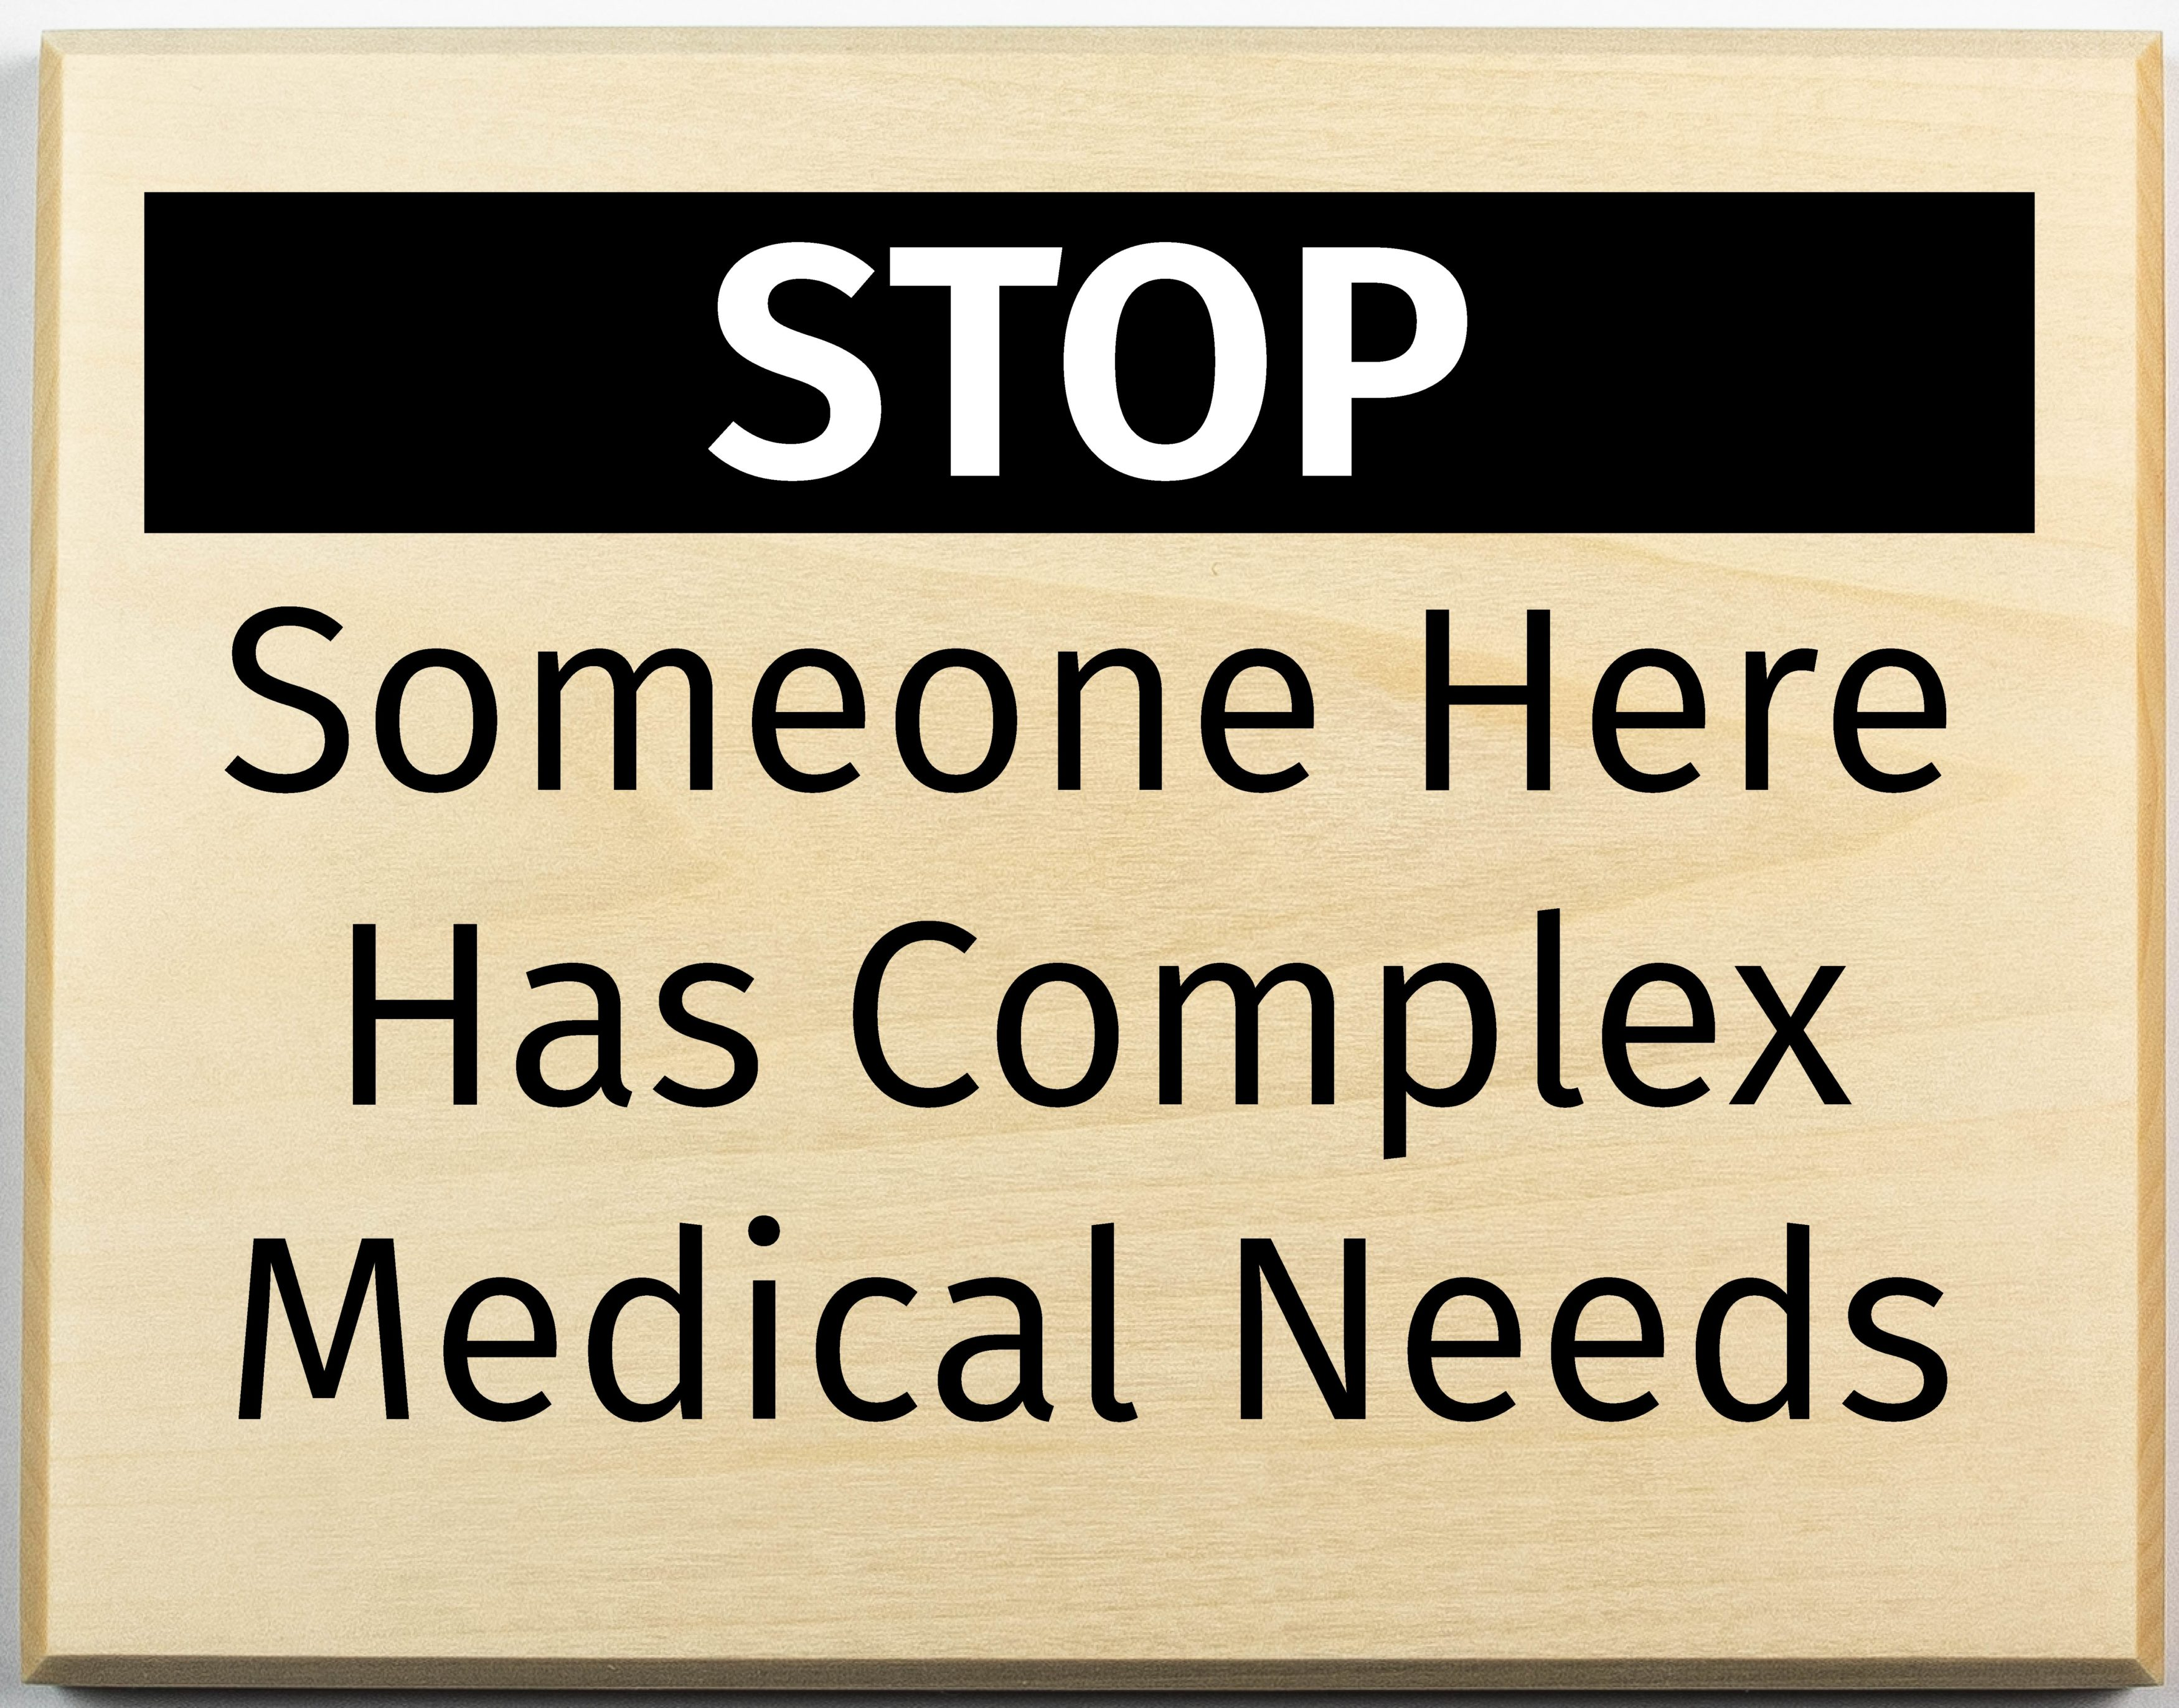 STOP someone here has complex medical needs sign